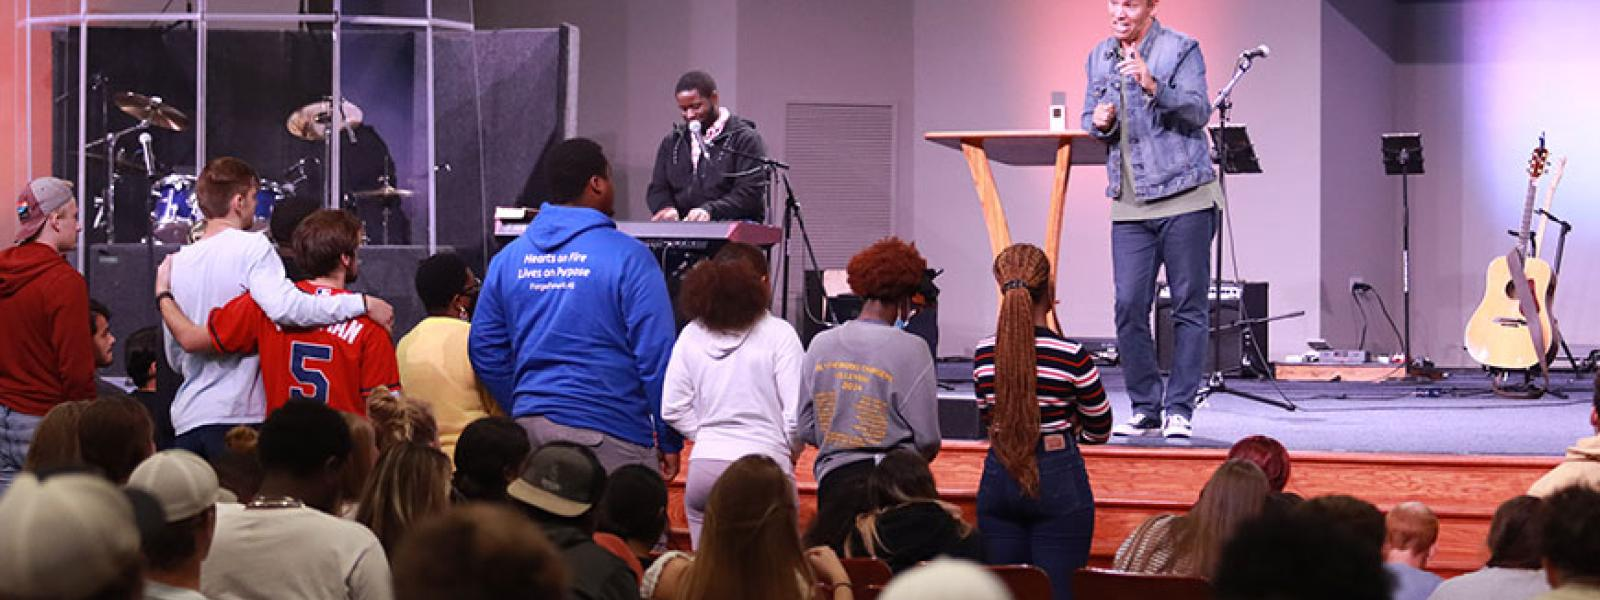 Student respond to a message during the annual Christian Life Conference. (Photo by Kierston Smith)